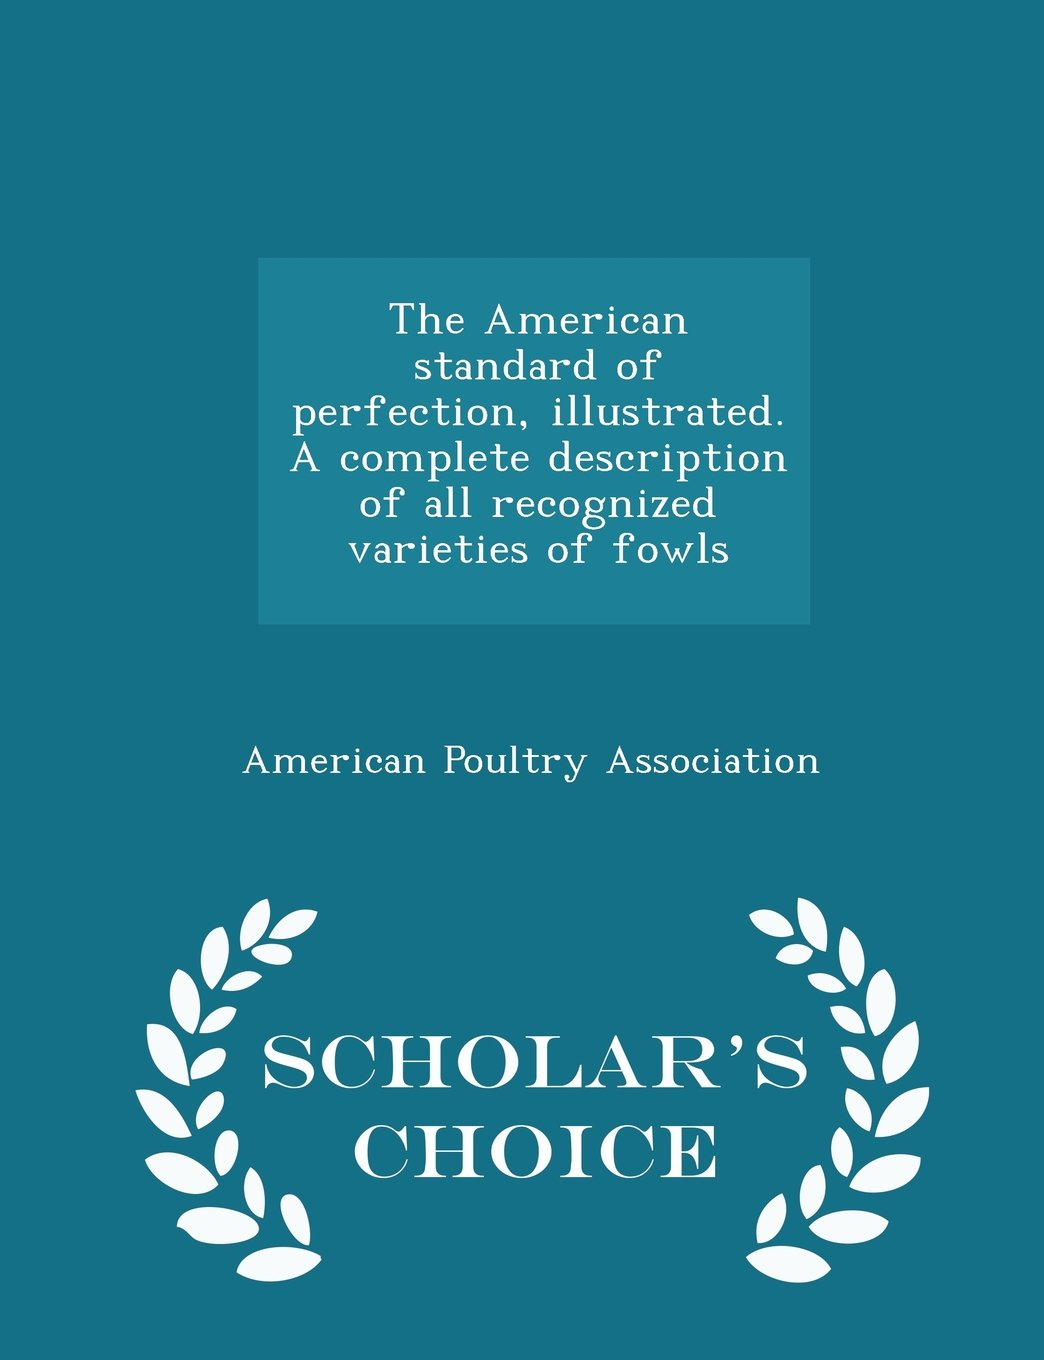 Download The American standard of perfection, illustrated. A complete description of all recognized varieties of fowls  - Scholar's Choice Edition PDF